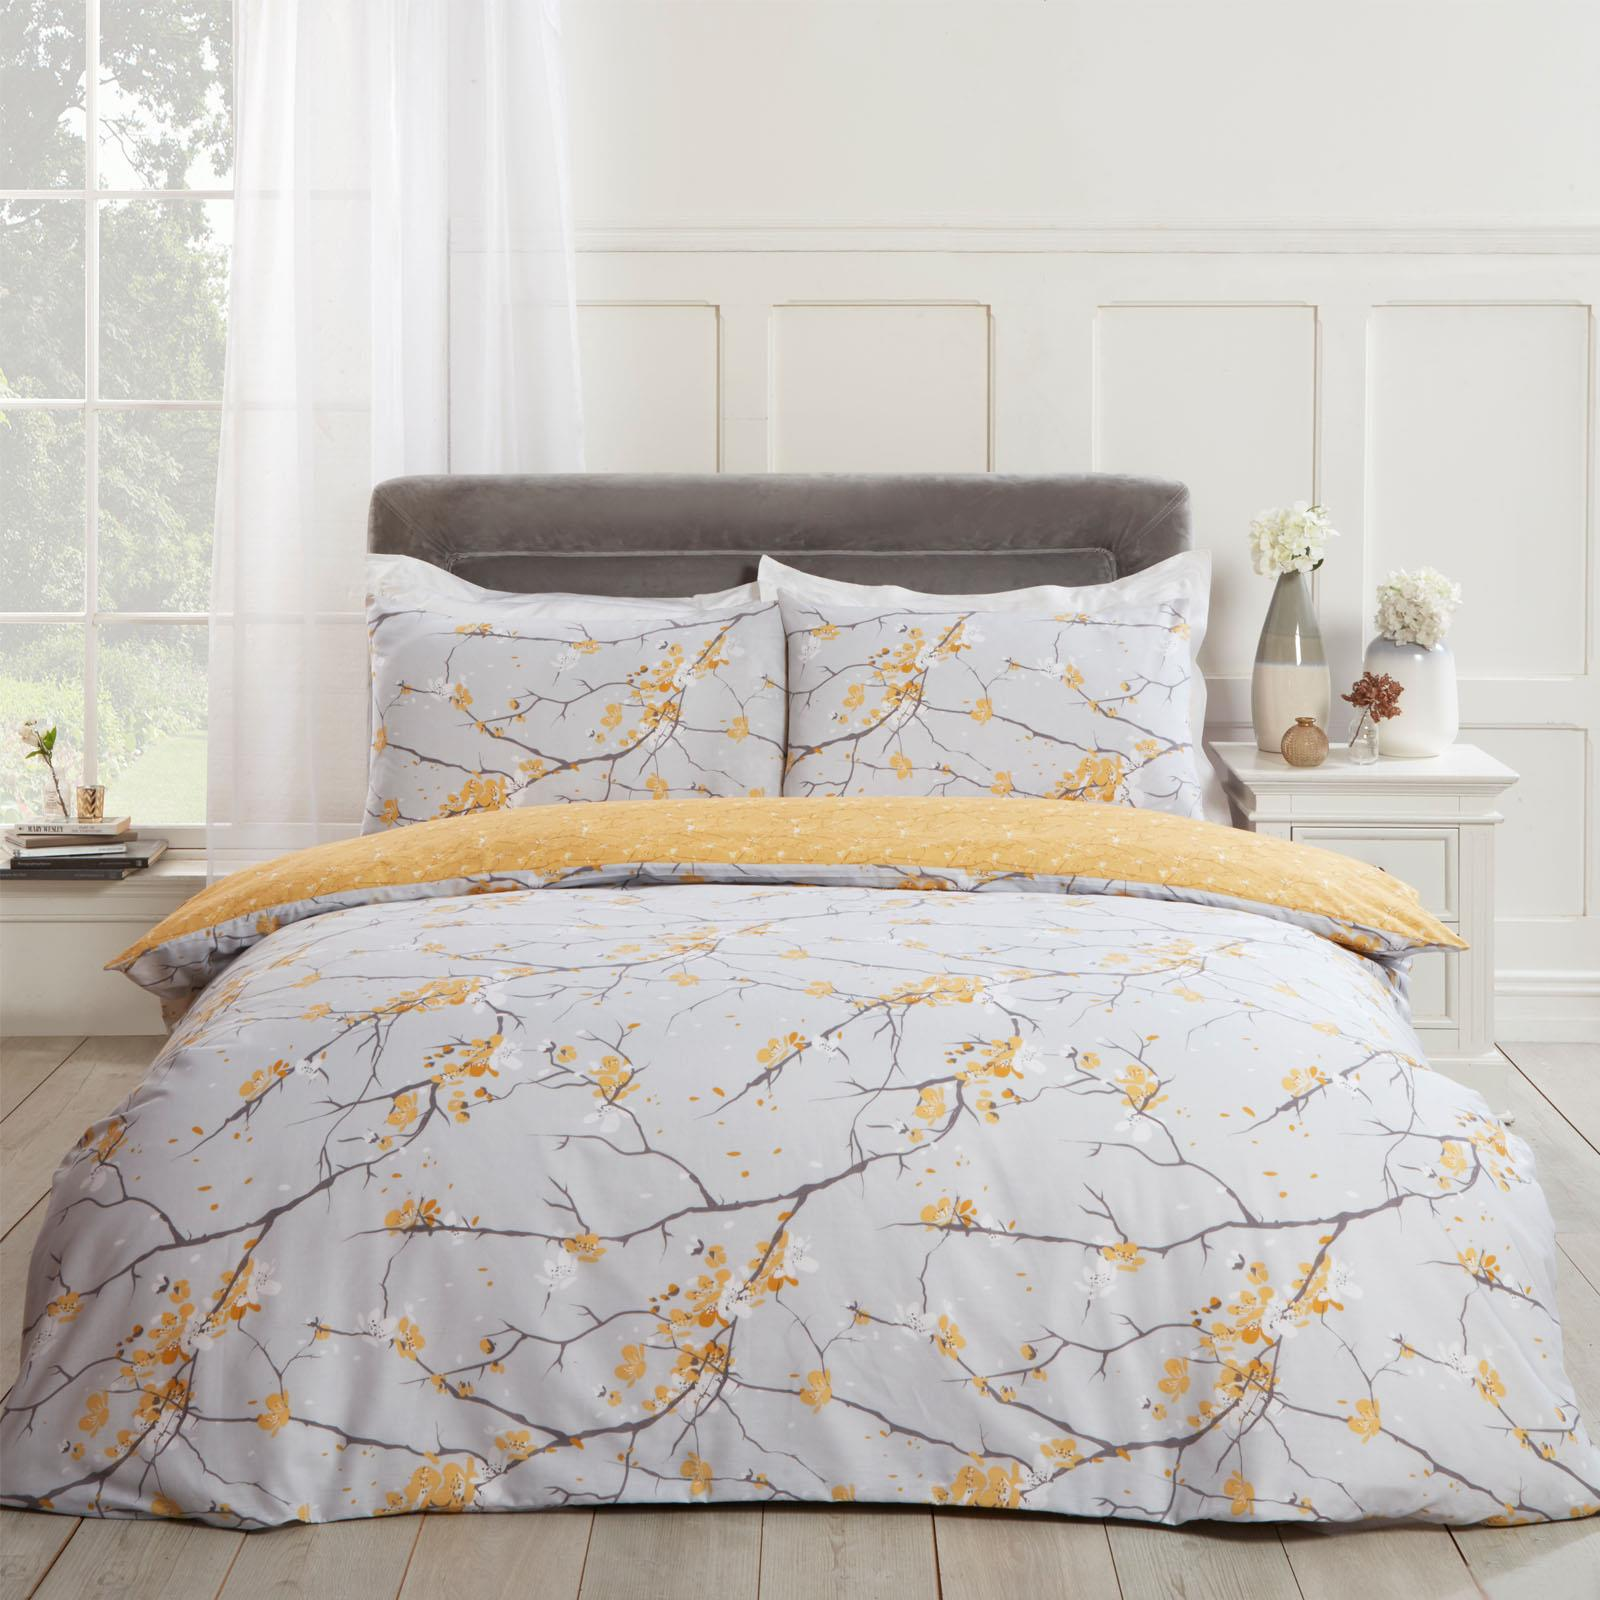 thumbnail 22 - Dreamscene Spring Blossoms Duvet Cover with Pillowcases Bedding Set Blush Ochre